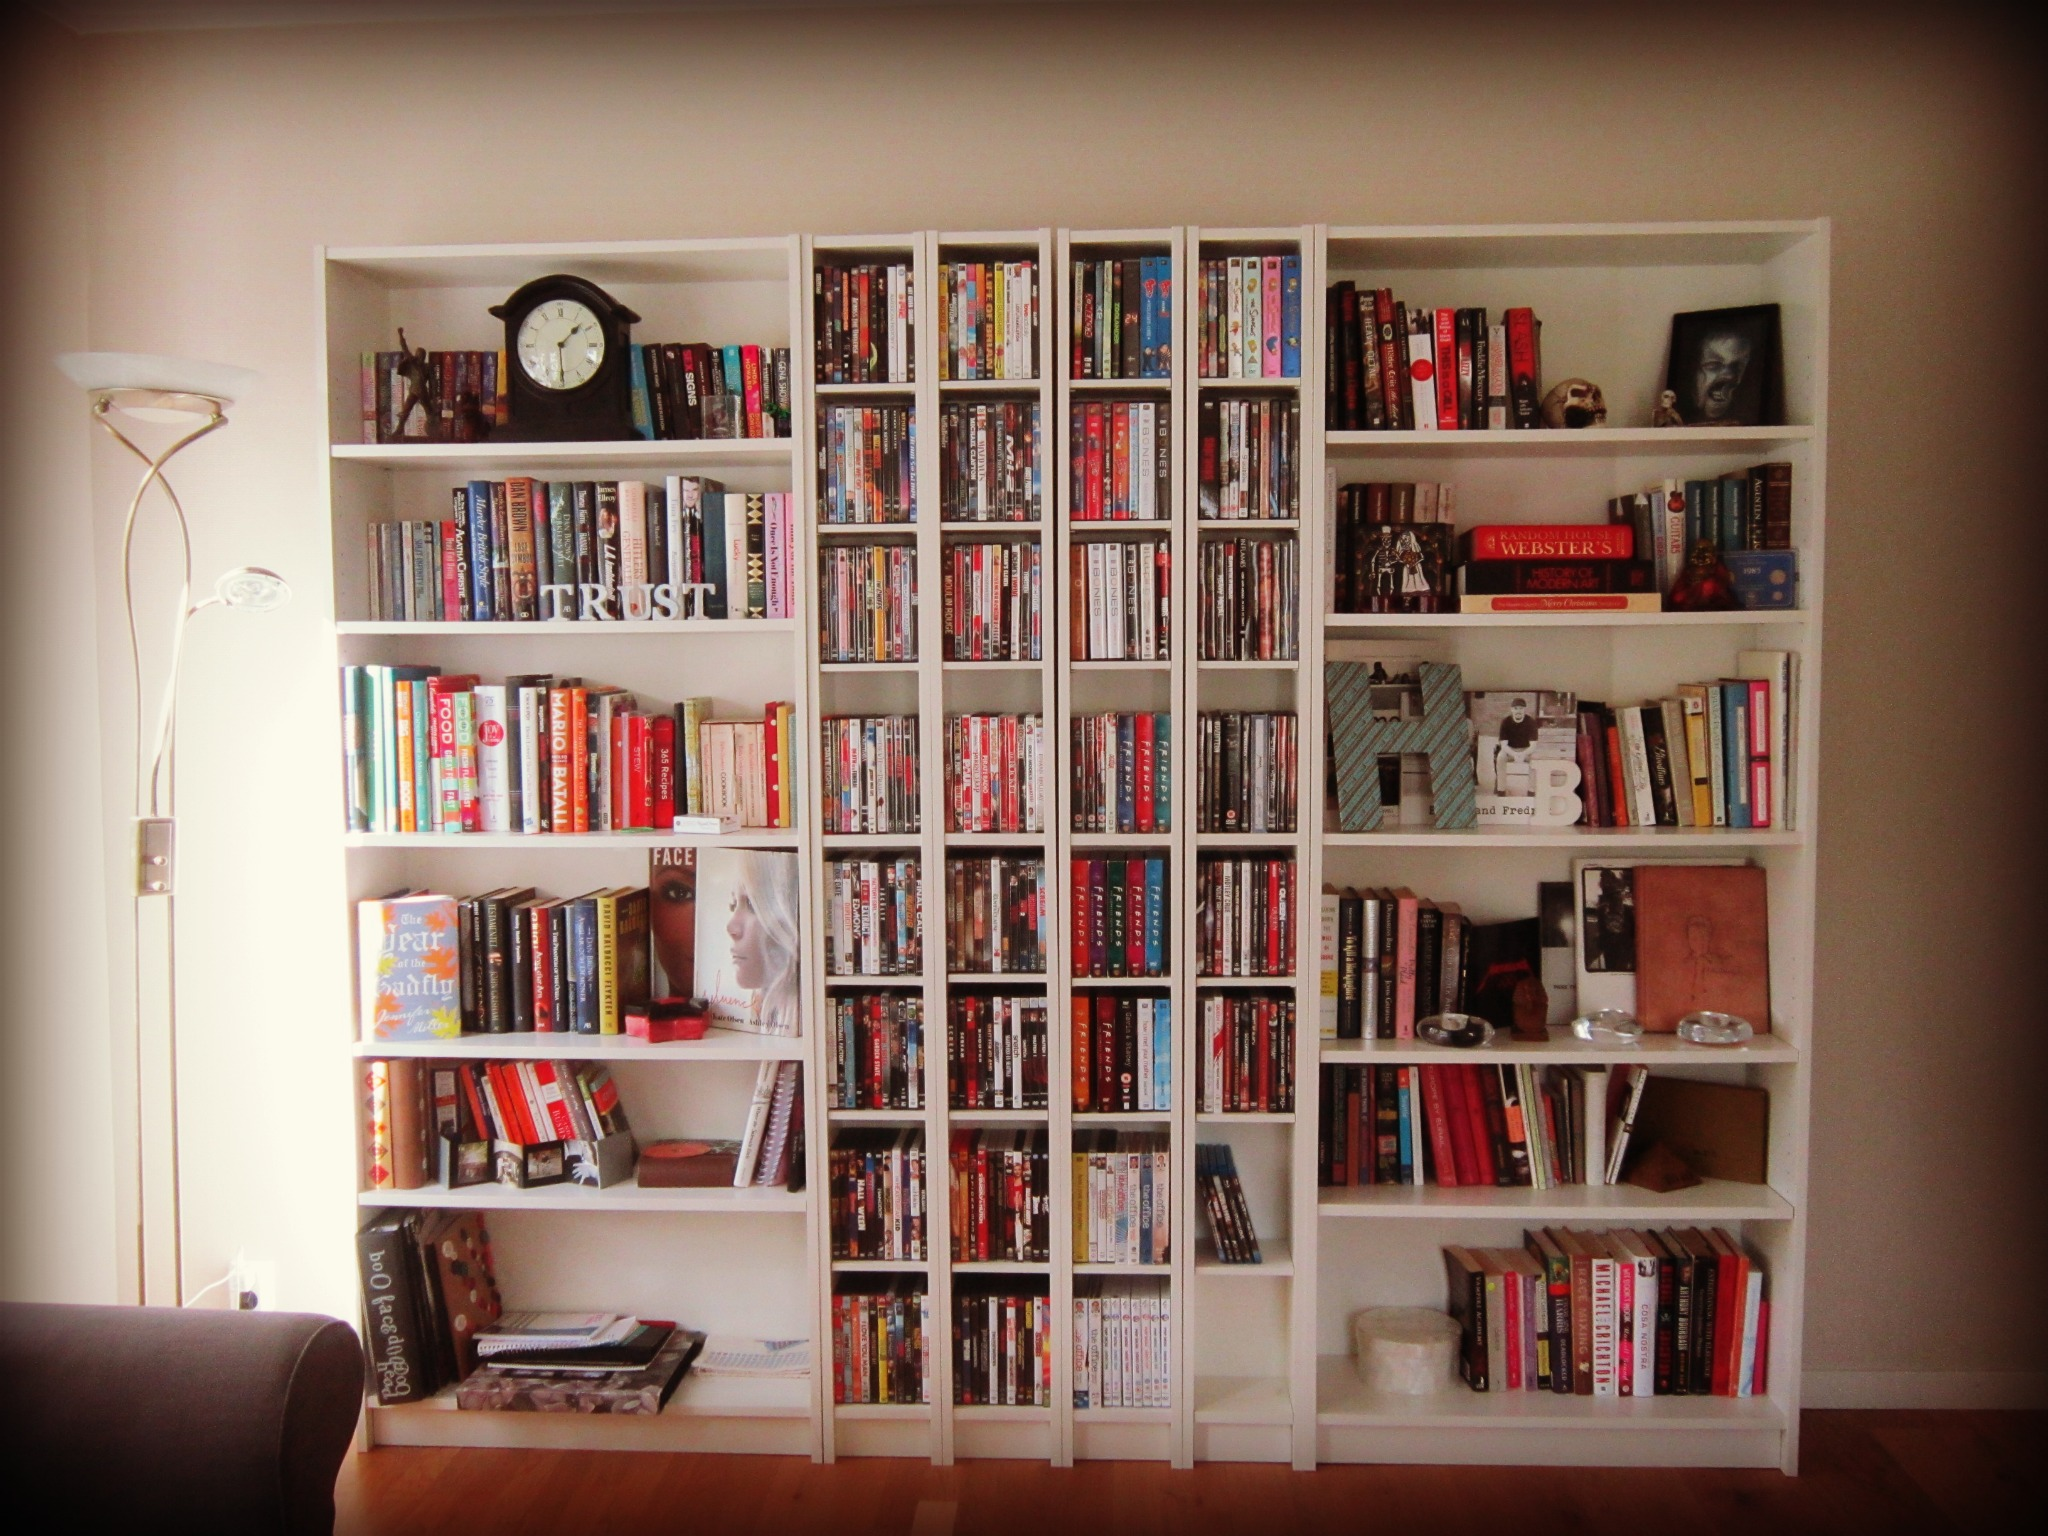 bookshelves-the-hemborg-wife-bookcases-ikea-bookcases-ikea